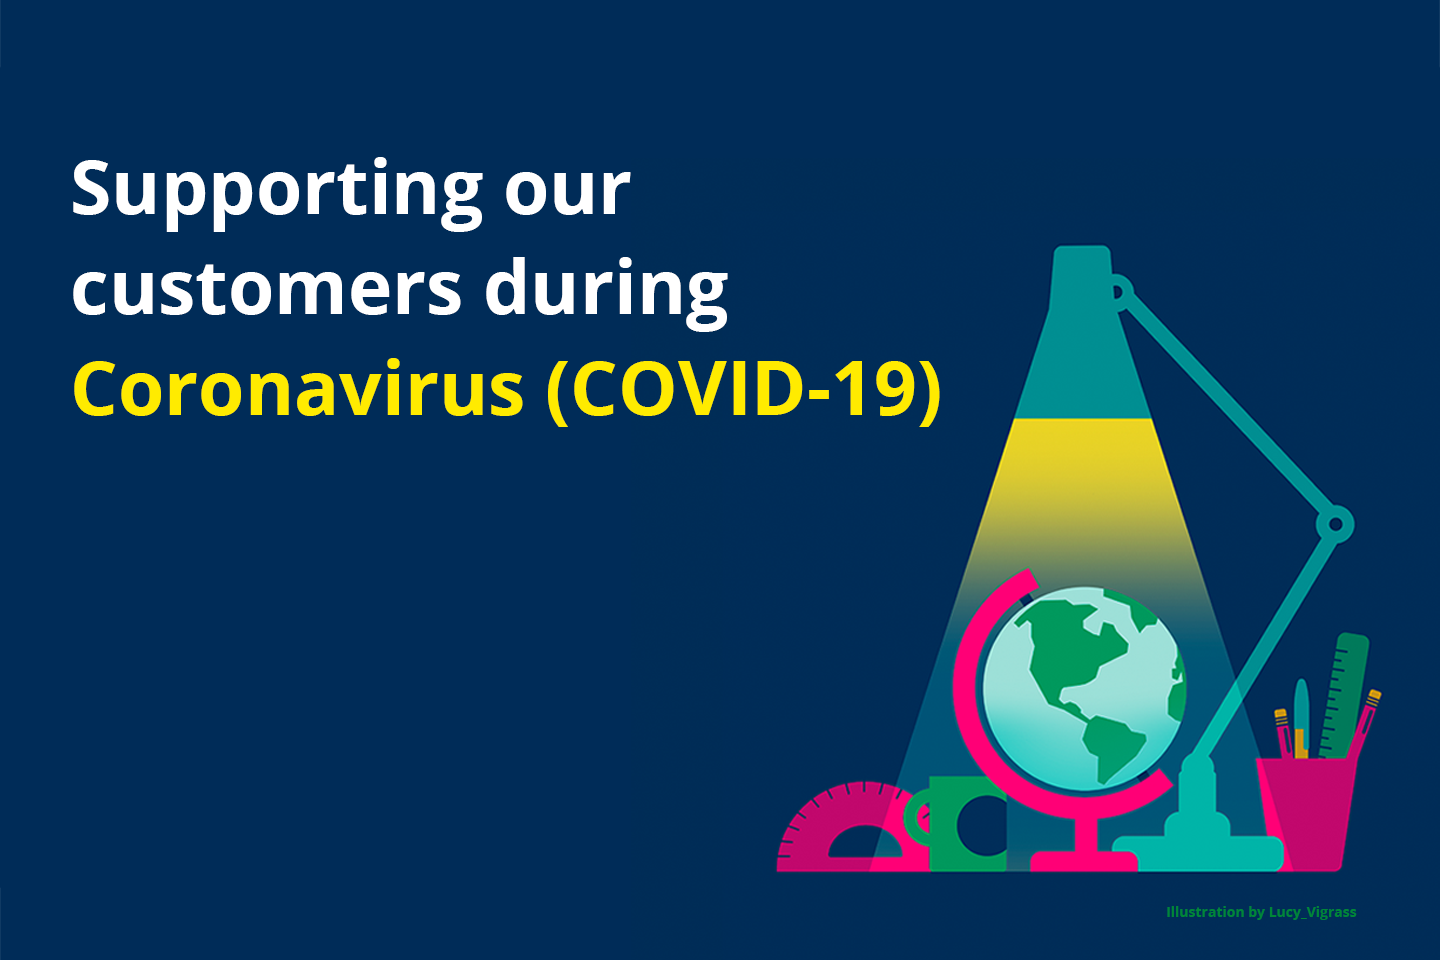 Supporting our customers during Coronavirus (COVID-19)